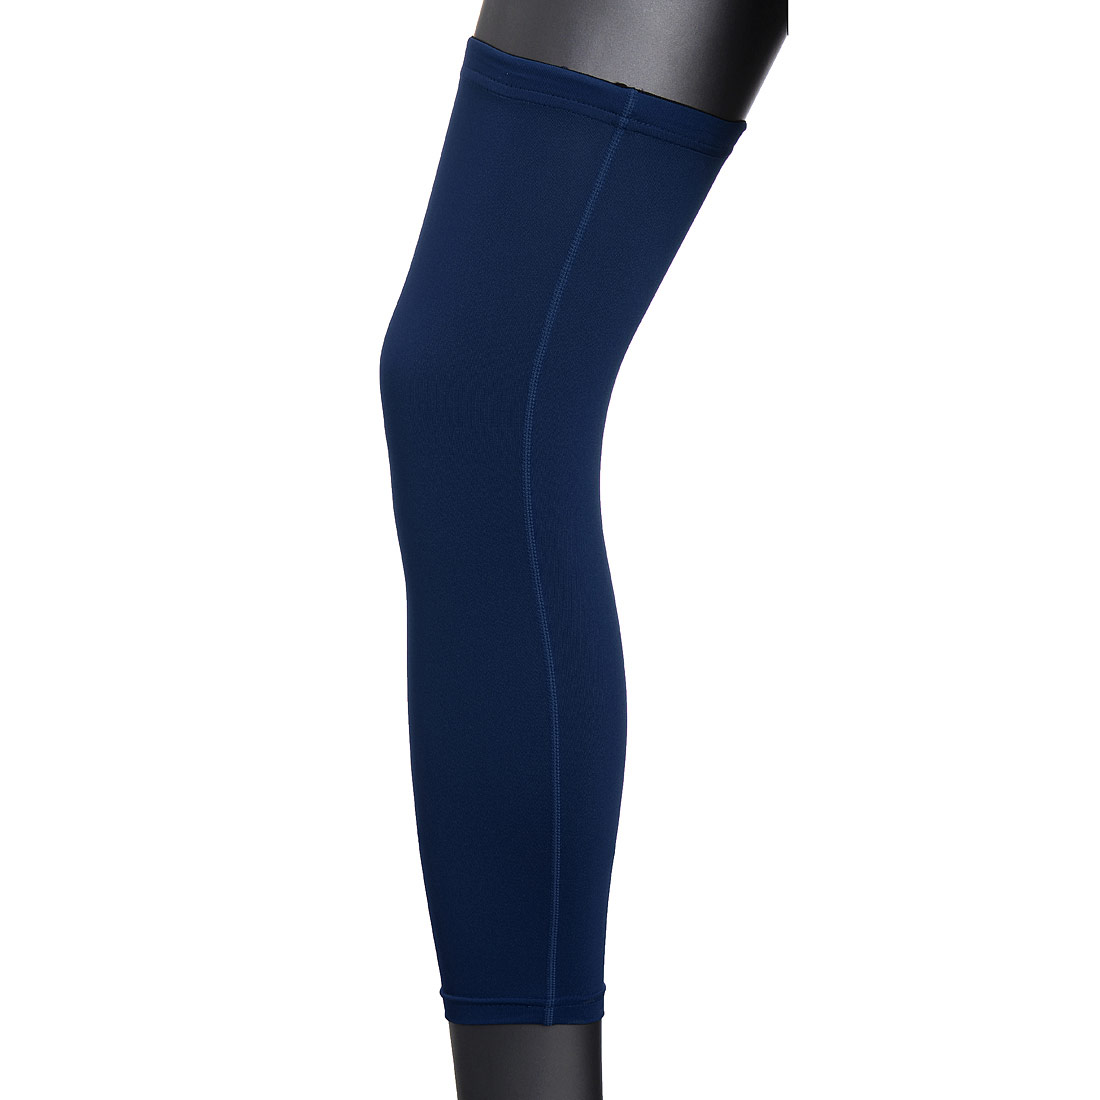 1pcs size M polyester Spandex Long Sleeve Leg Calf Knee Protector outdoor sport Basketball Cycling Stretch 7 color Knee Pads